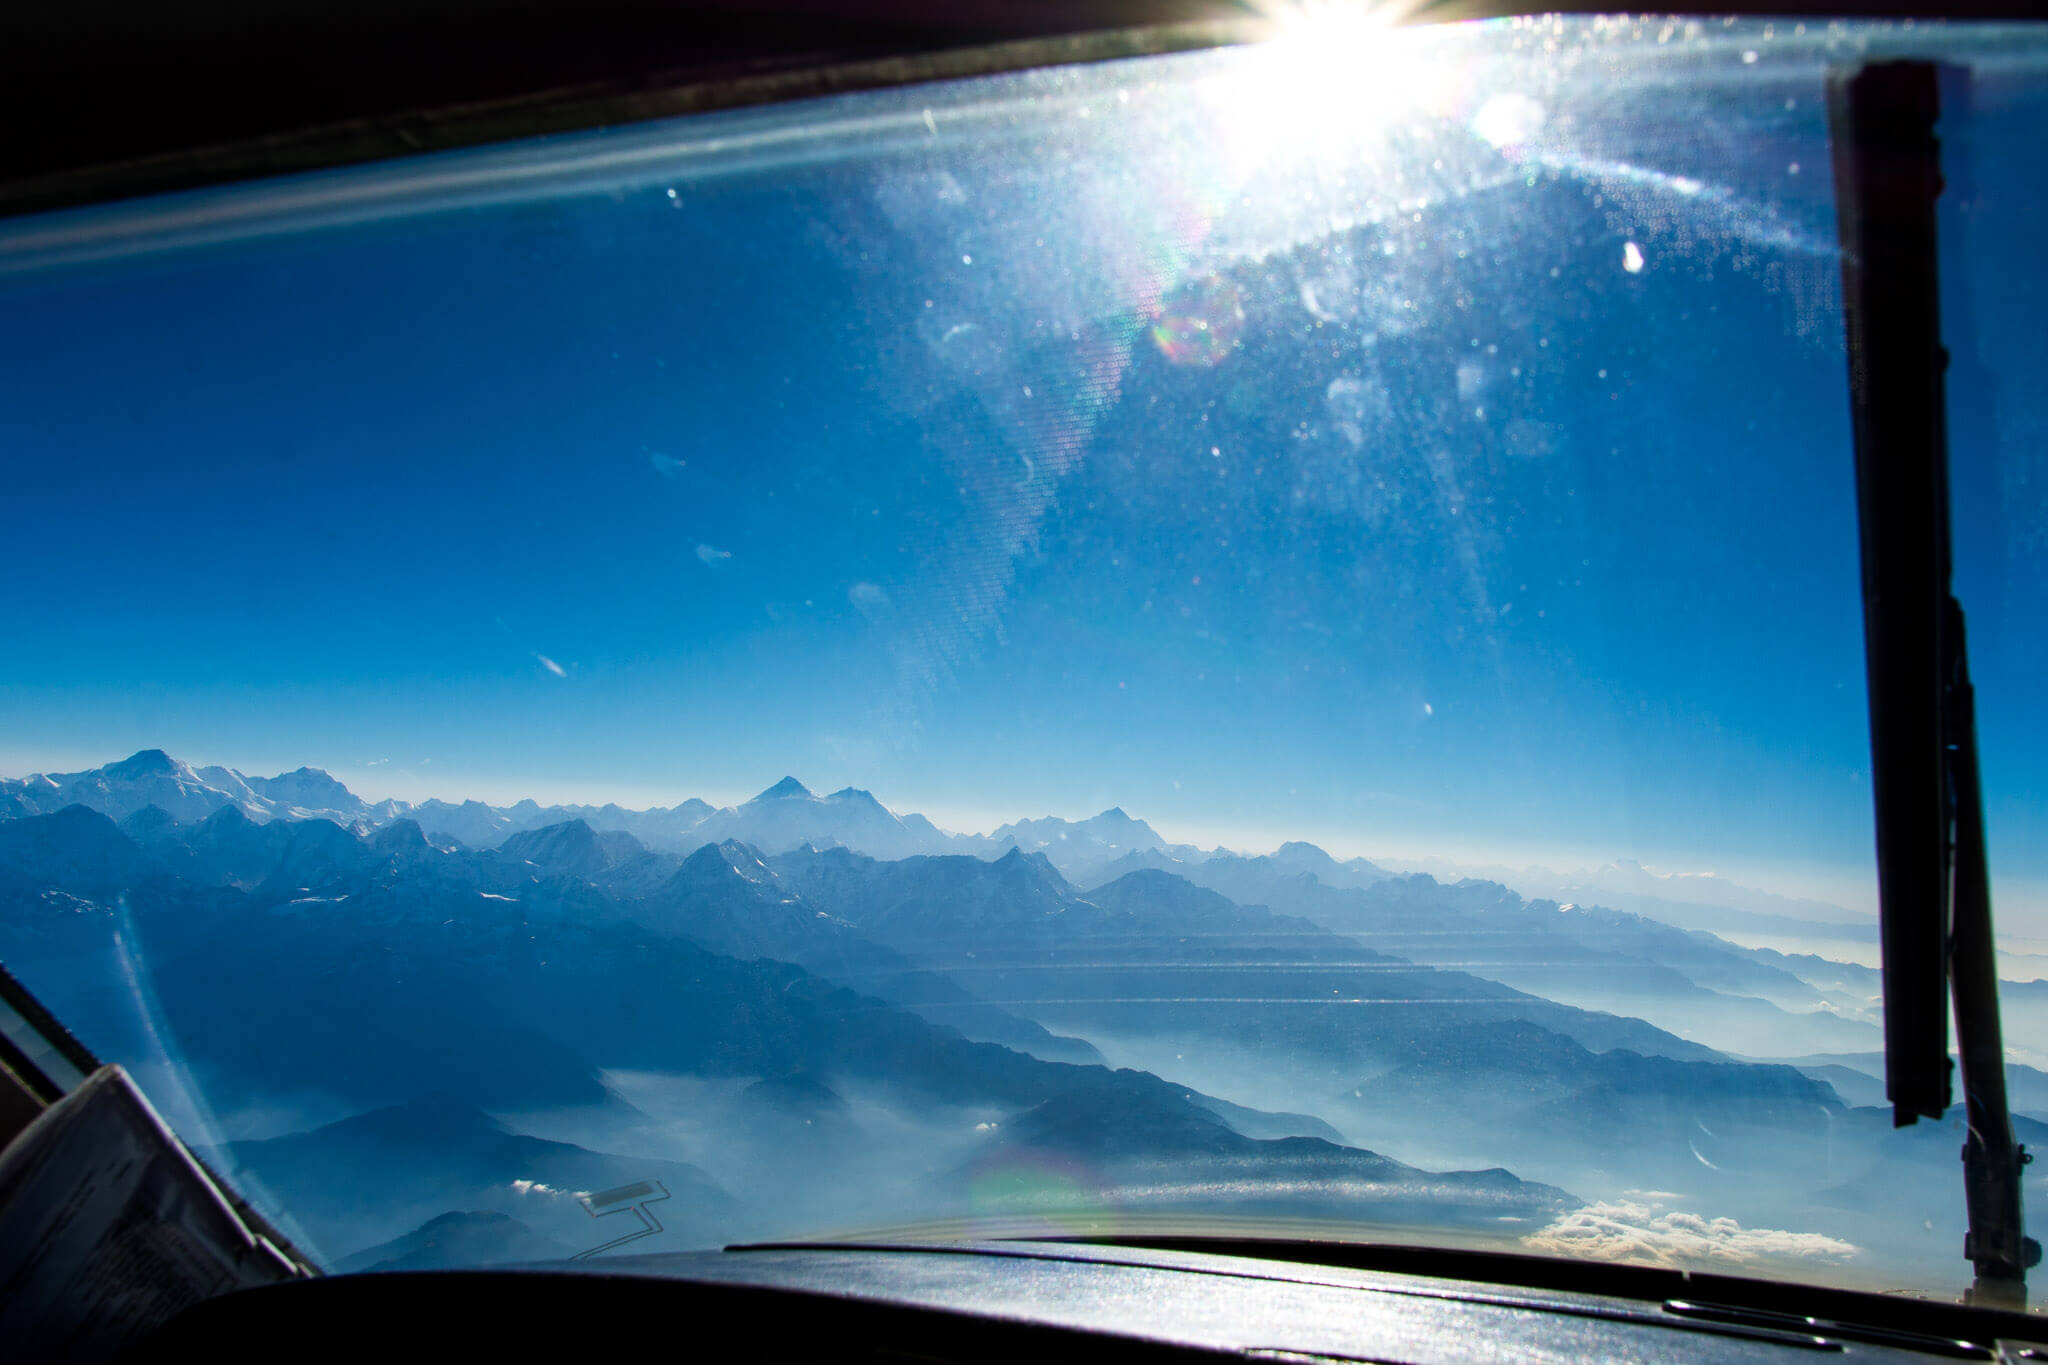 The view of Mount Everest from the pilot's cockpit